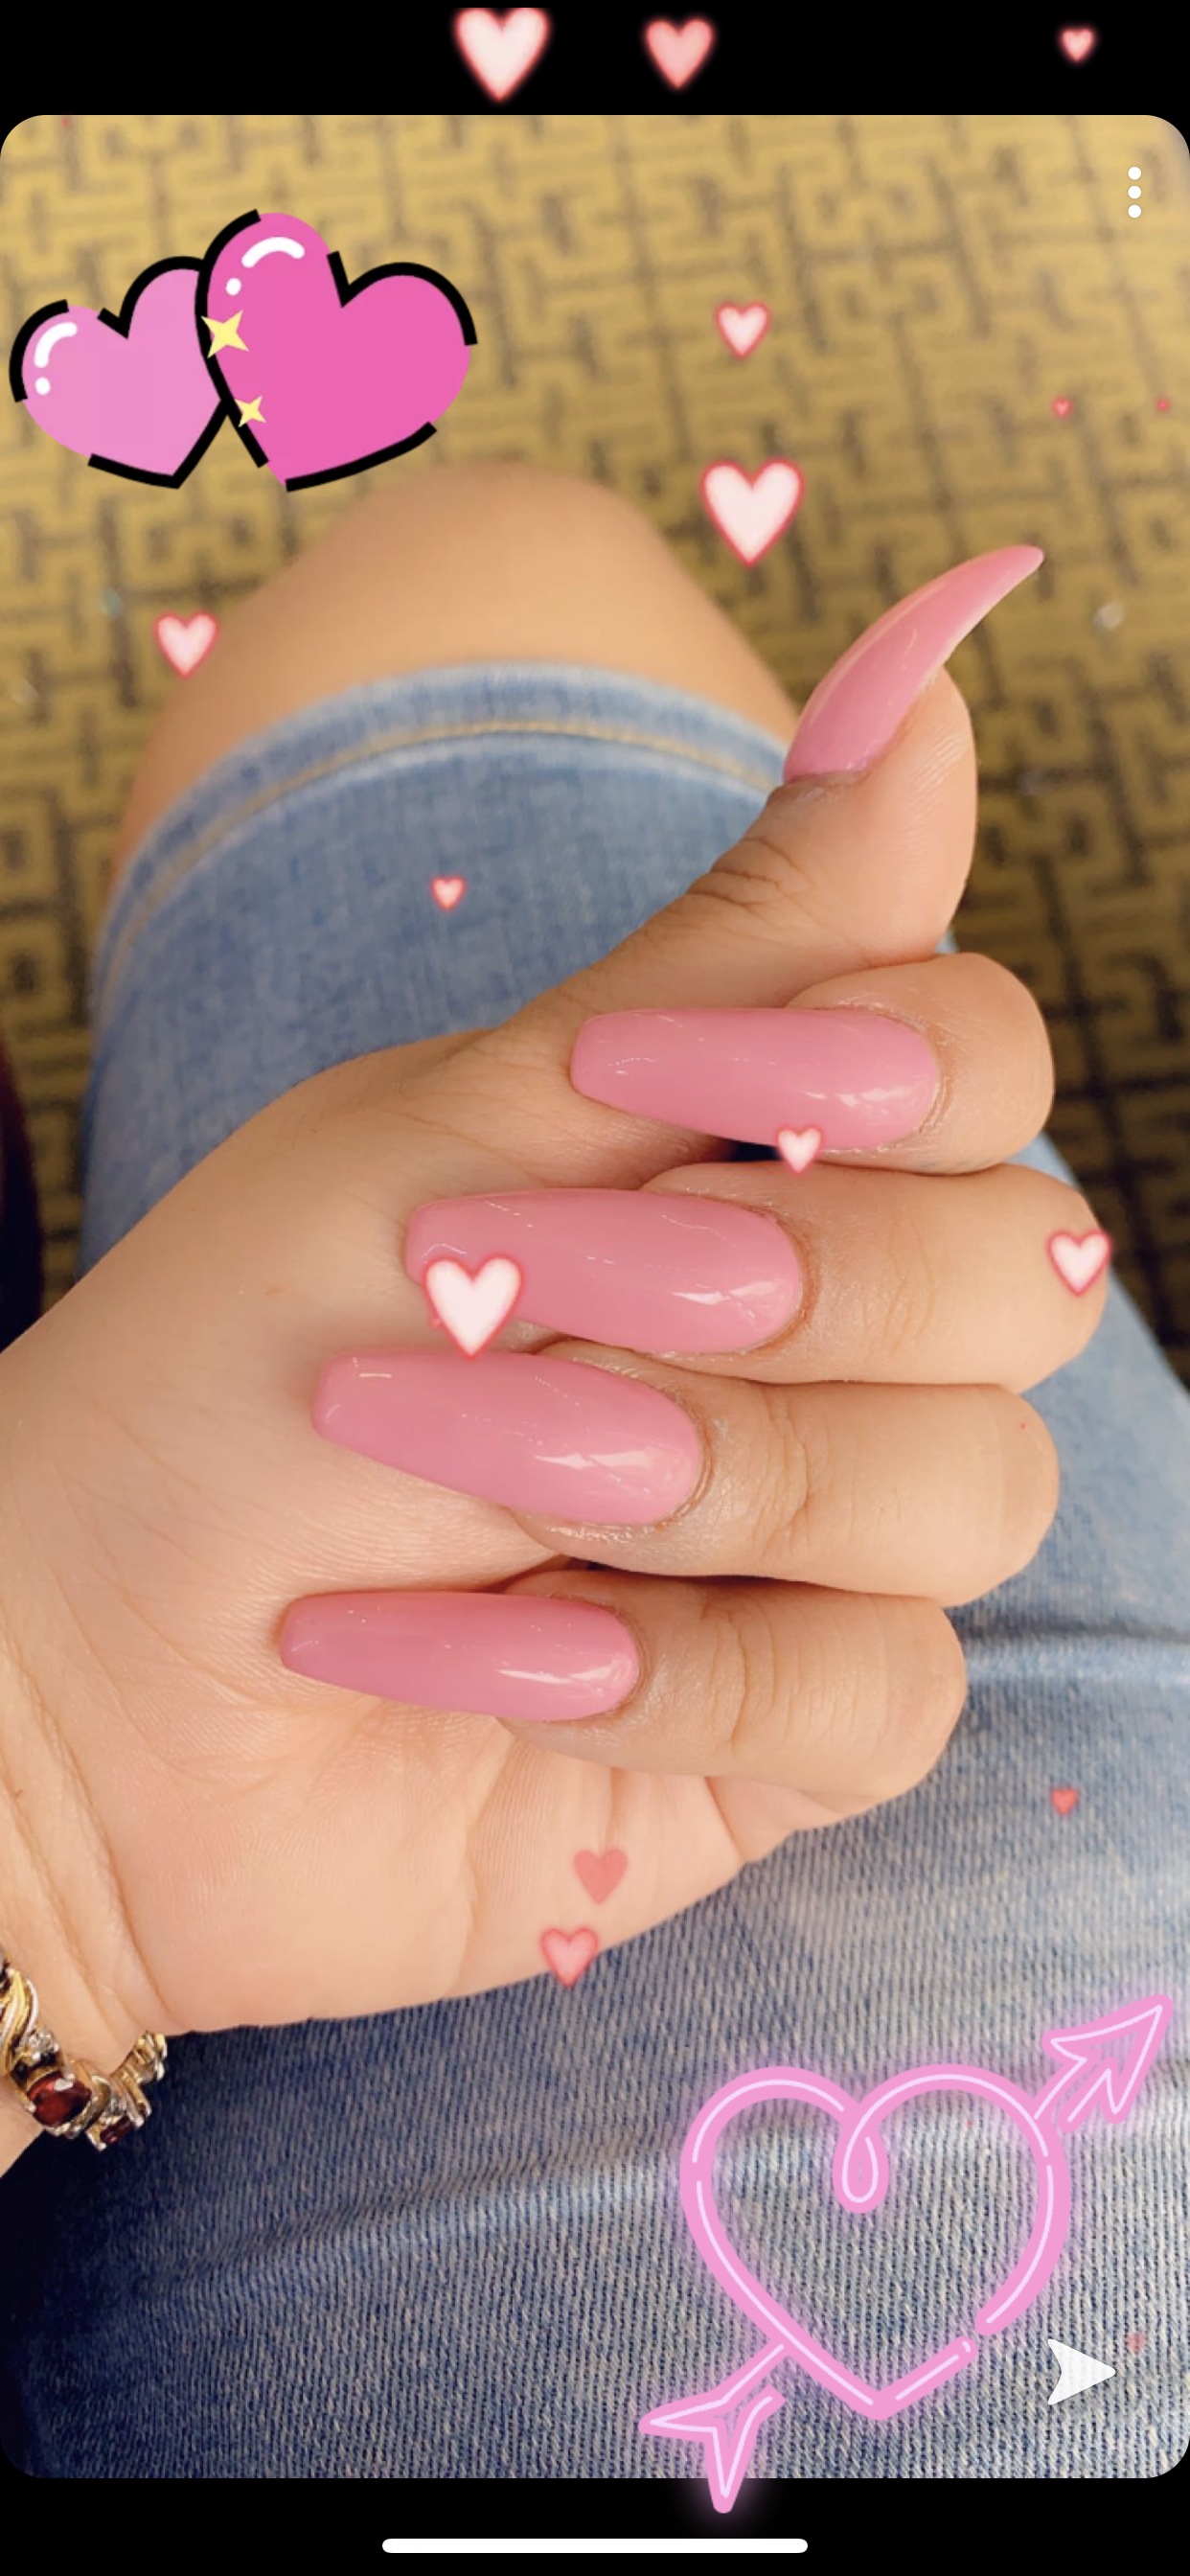 Pin By Asg5353 On Nails Back To School Nails School Nails Nails